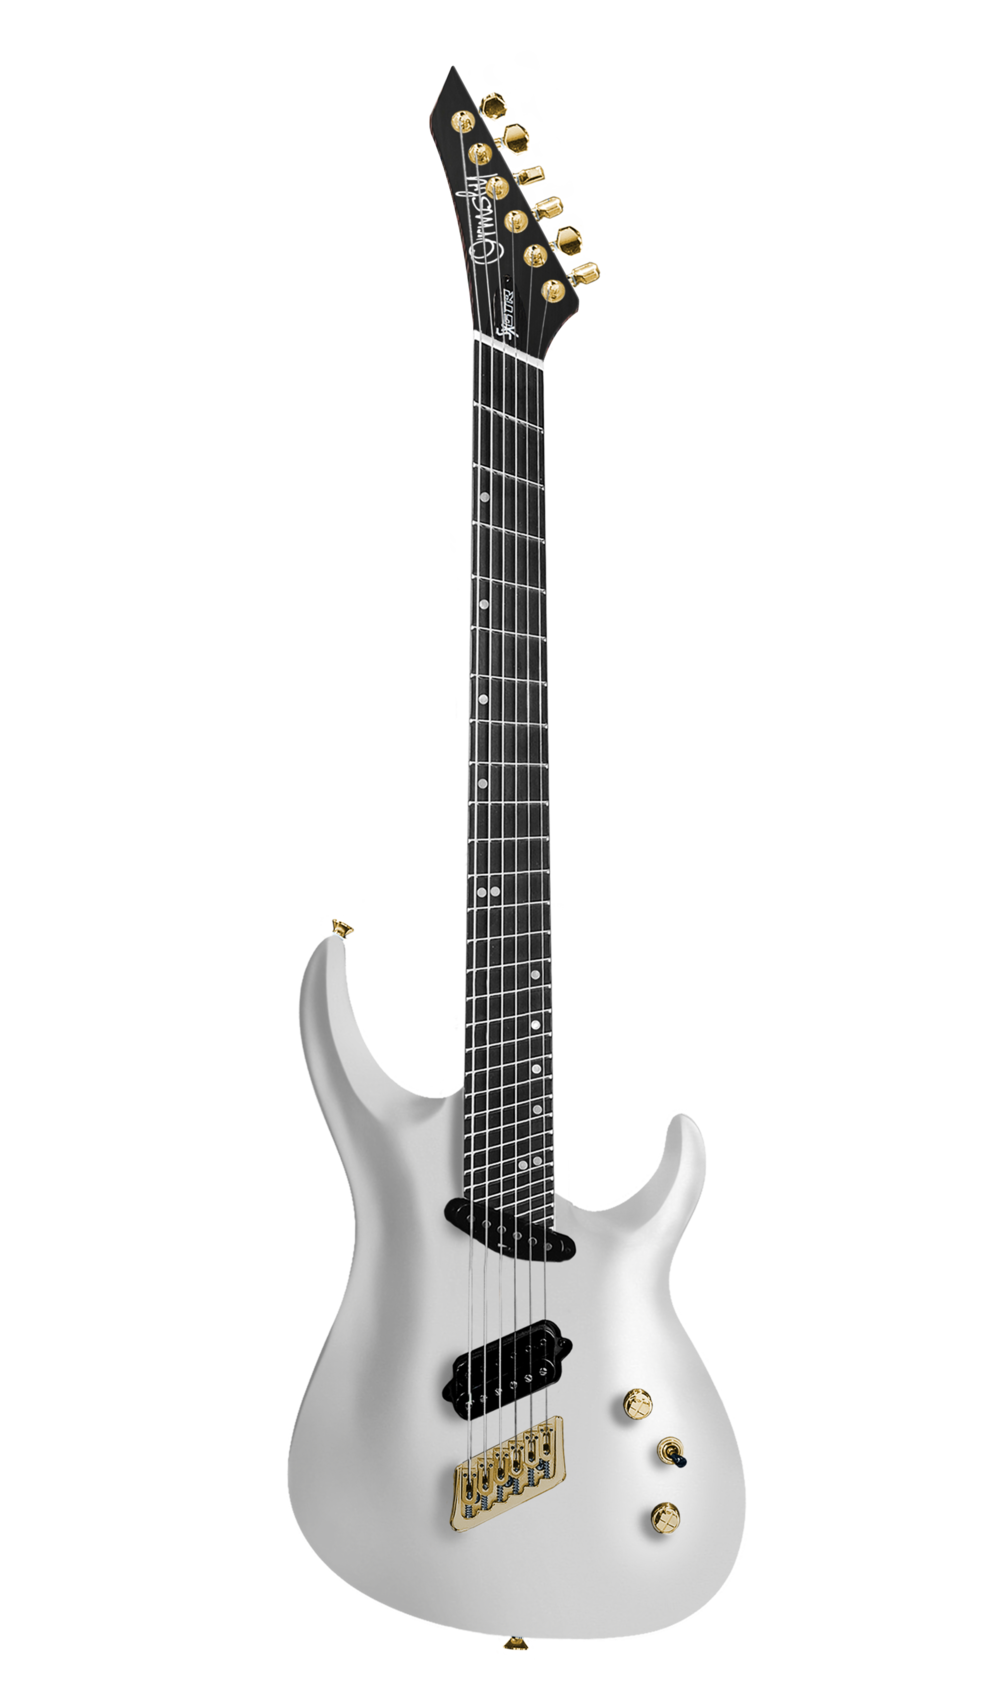 Platinum Pearl White Gloss SX Carved Top